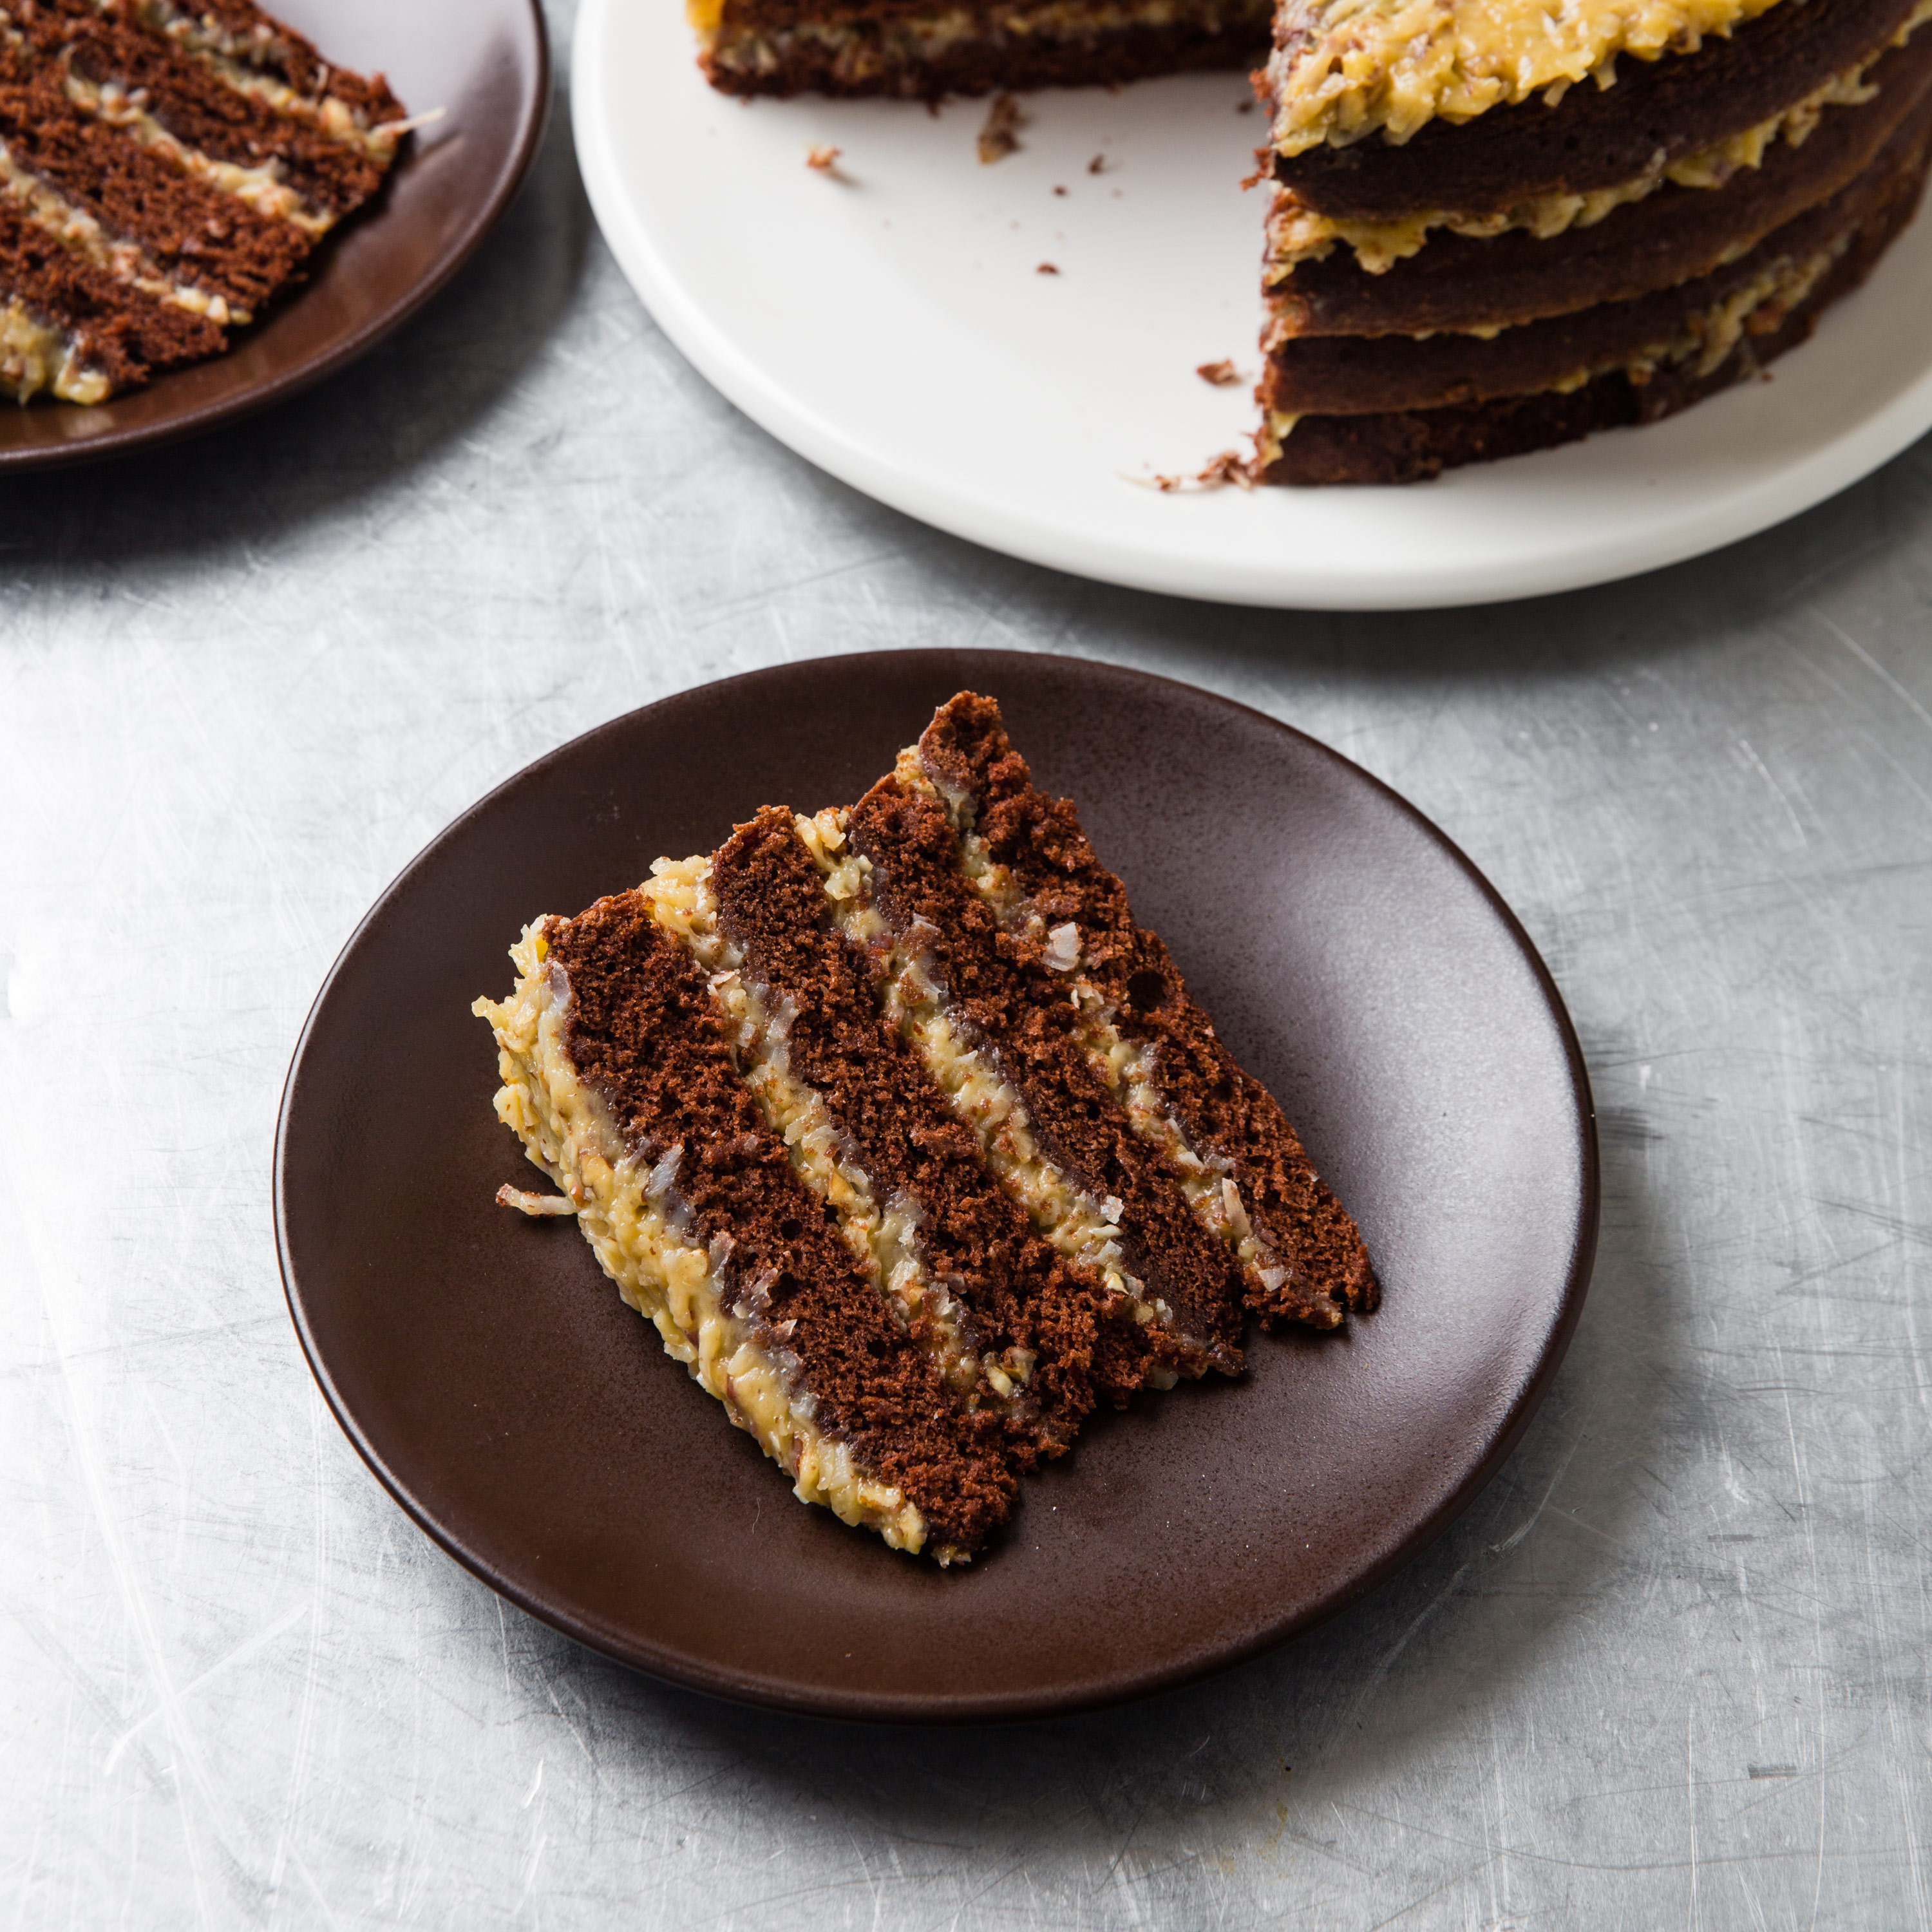 Cook S Country German Chocolate Cake